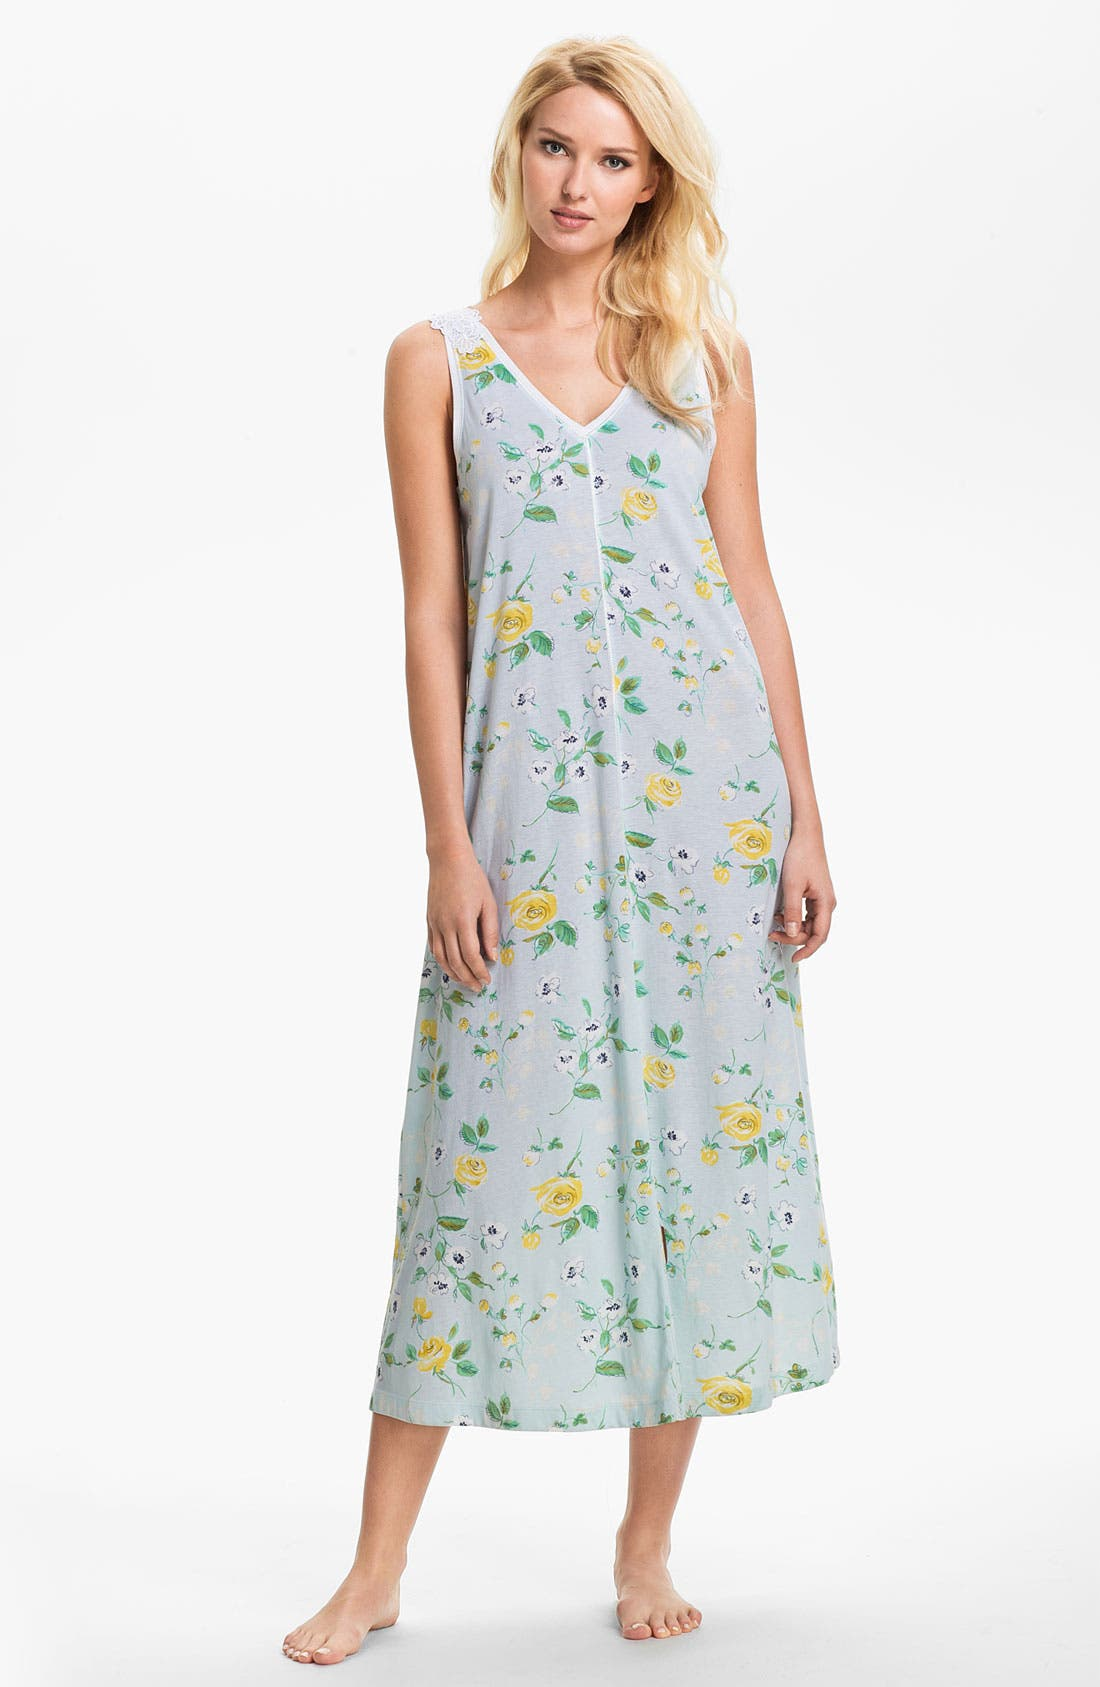 Main Image - Carole Hochman Designs Sleeveless Nightgown